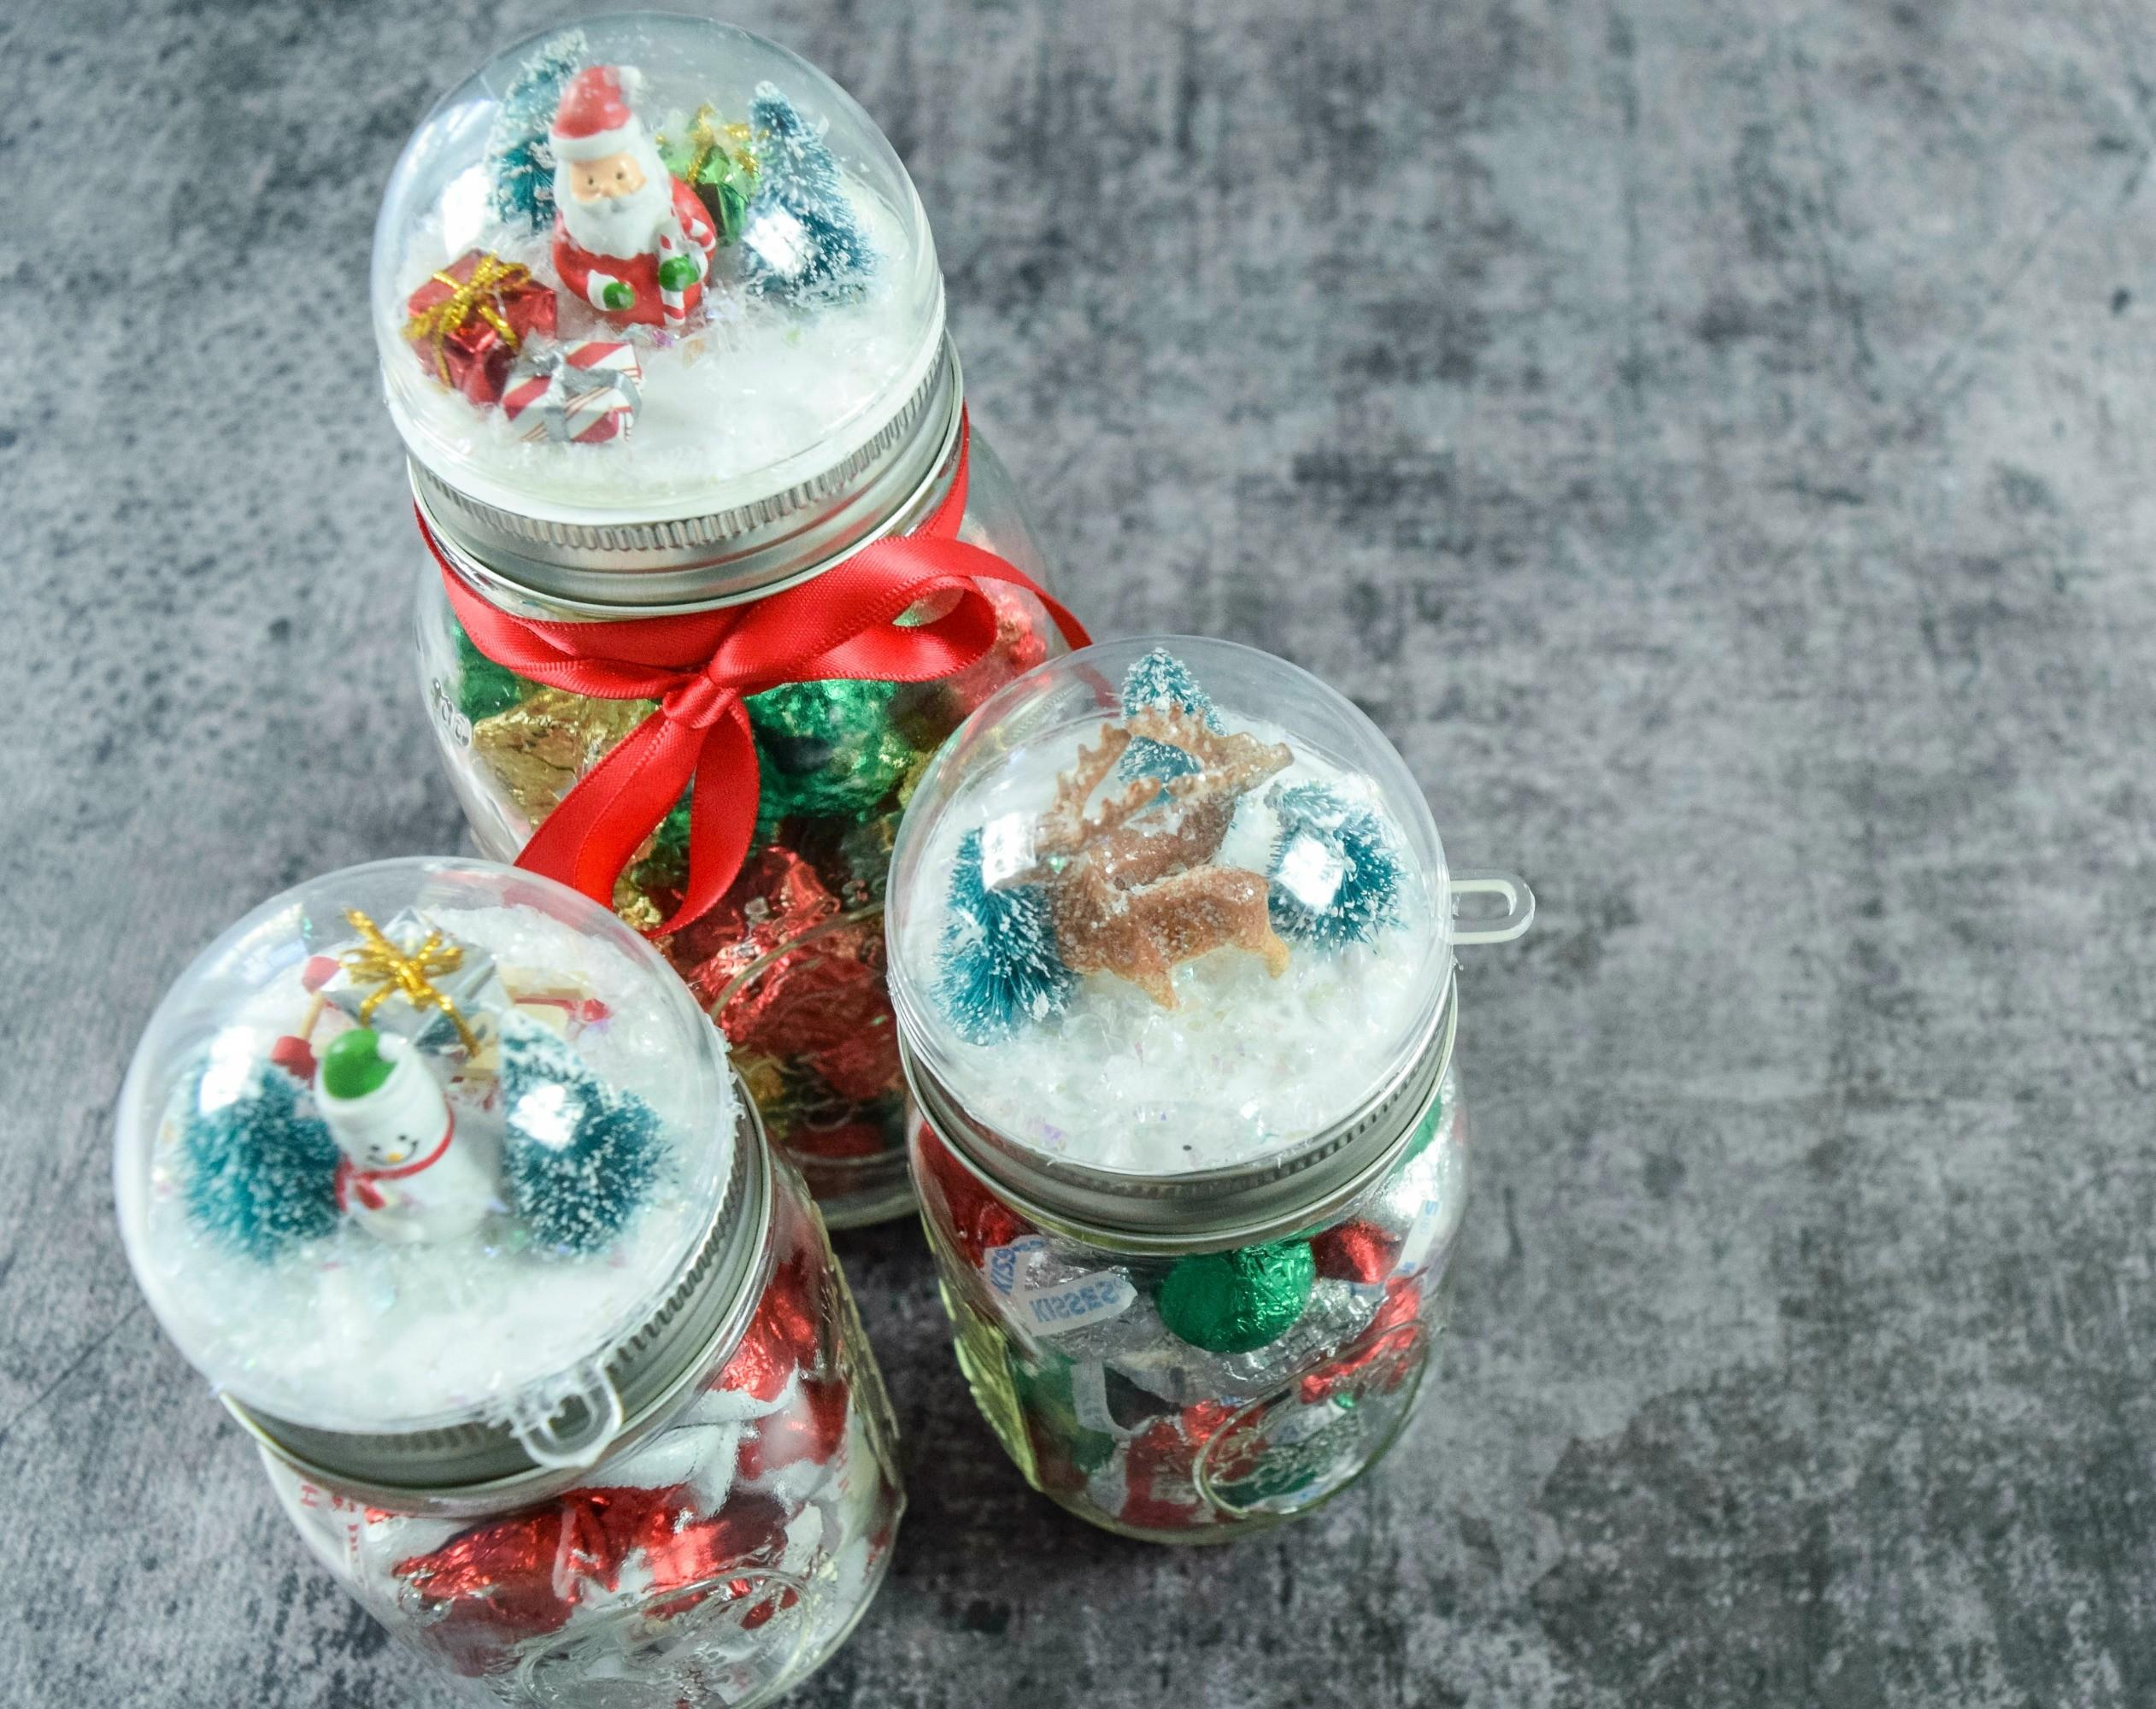 Diy Snowglobe Mason Jar Craft Holiday Gift Tutorial